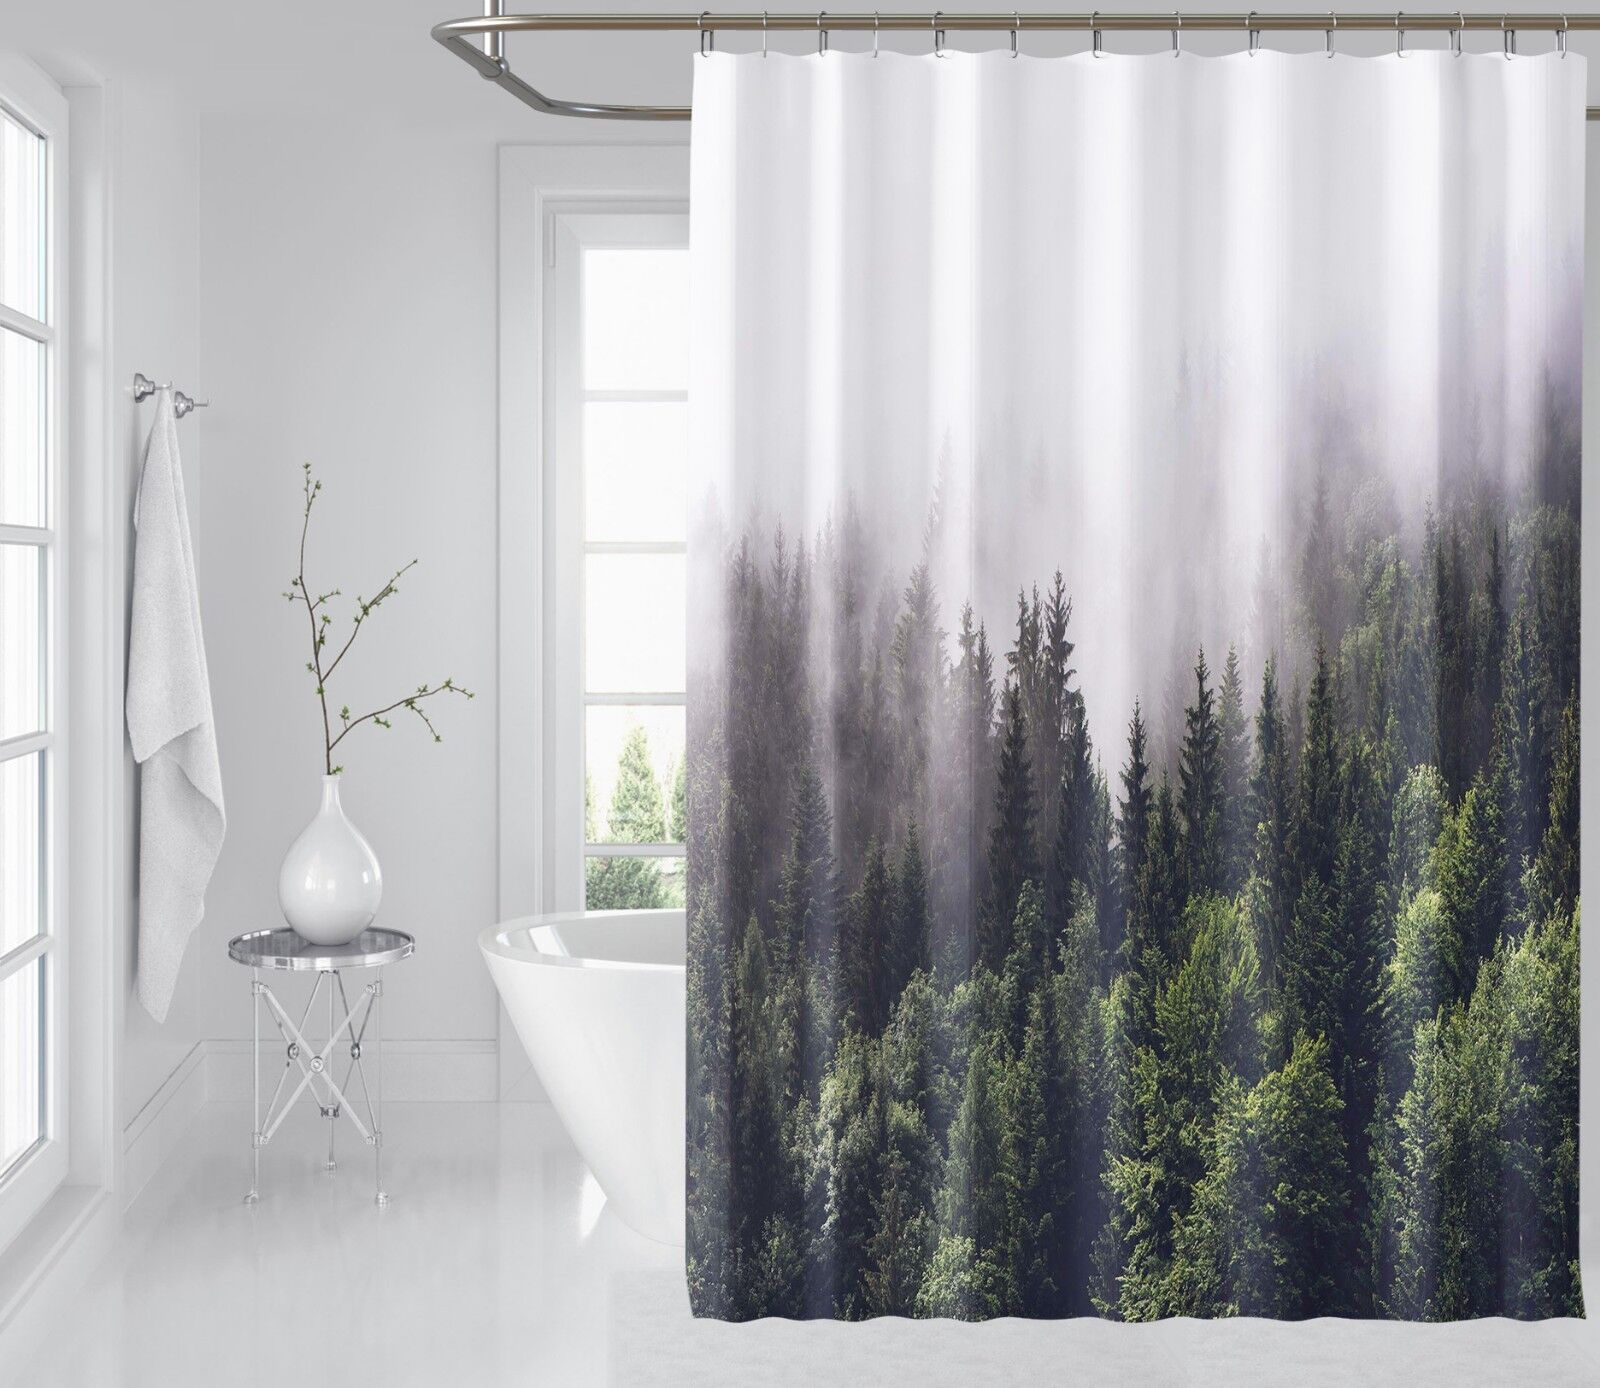 Niebla de bosque 3D 4252 Fibra de Cortina de Ducha Impermeable Baño Inodoro de Windows Home